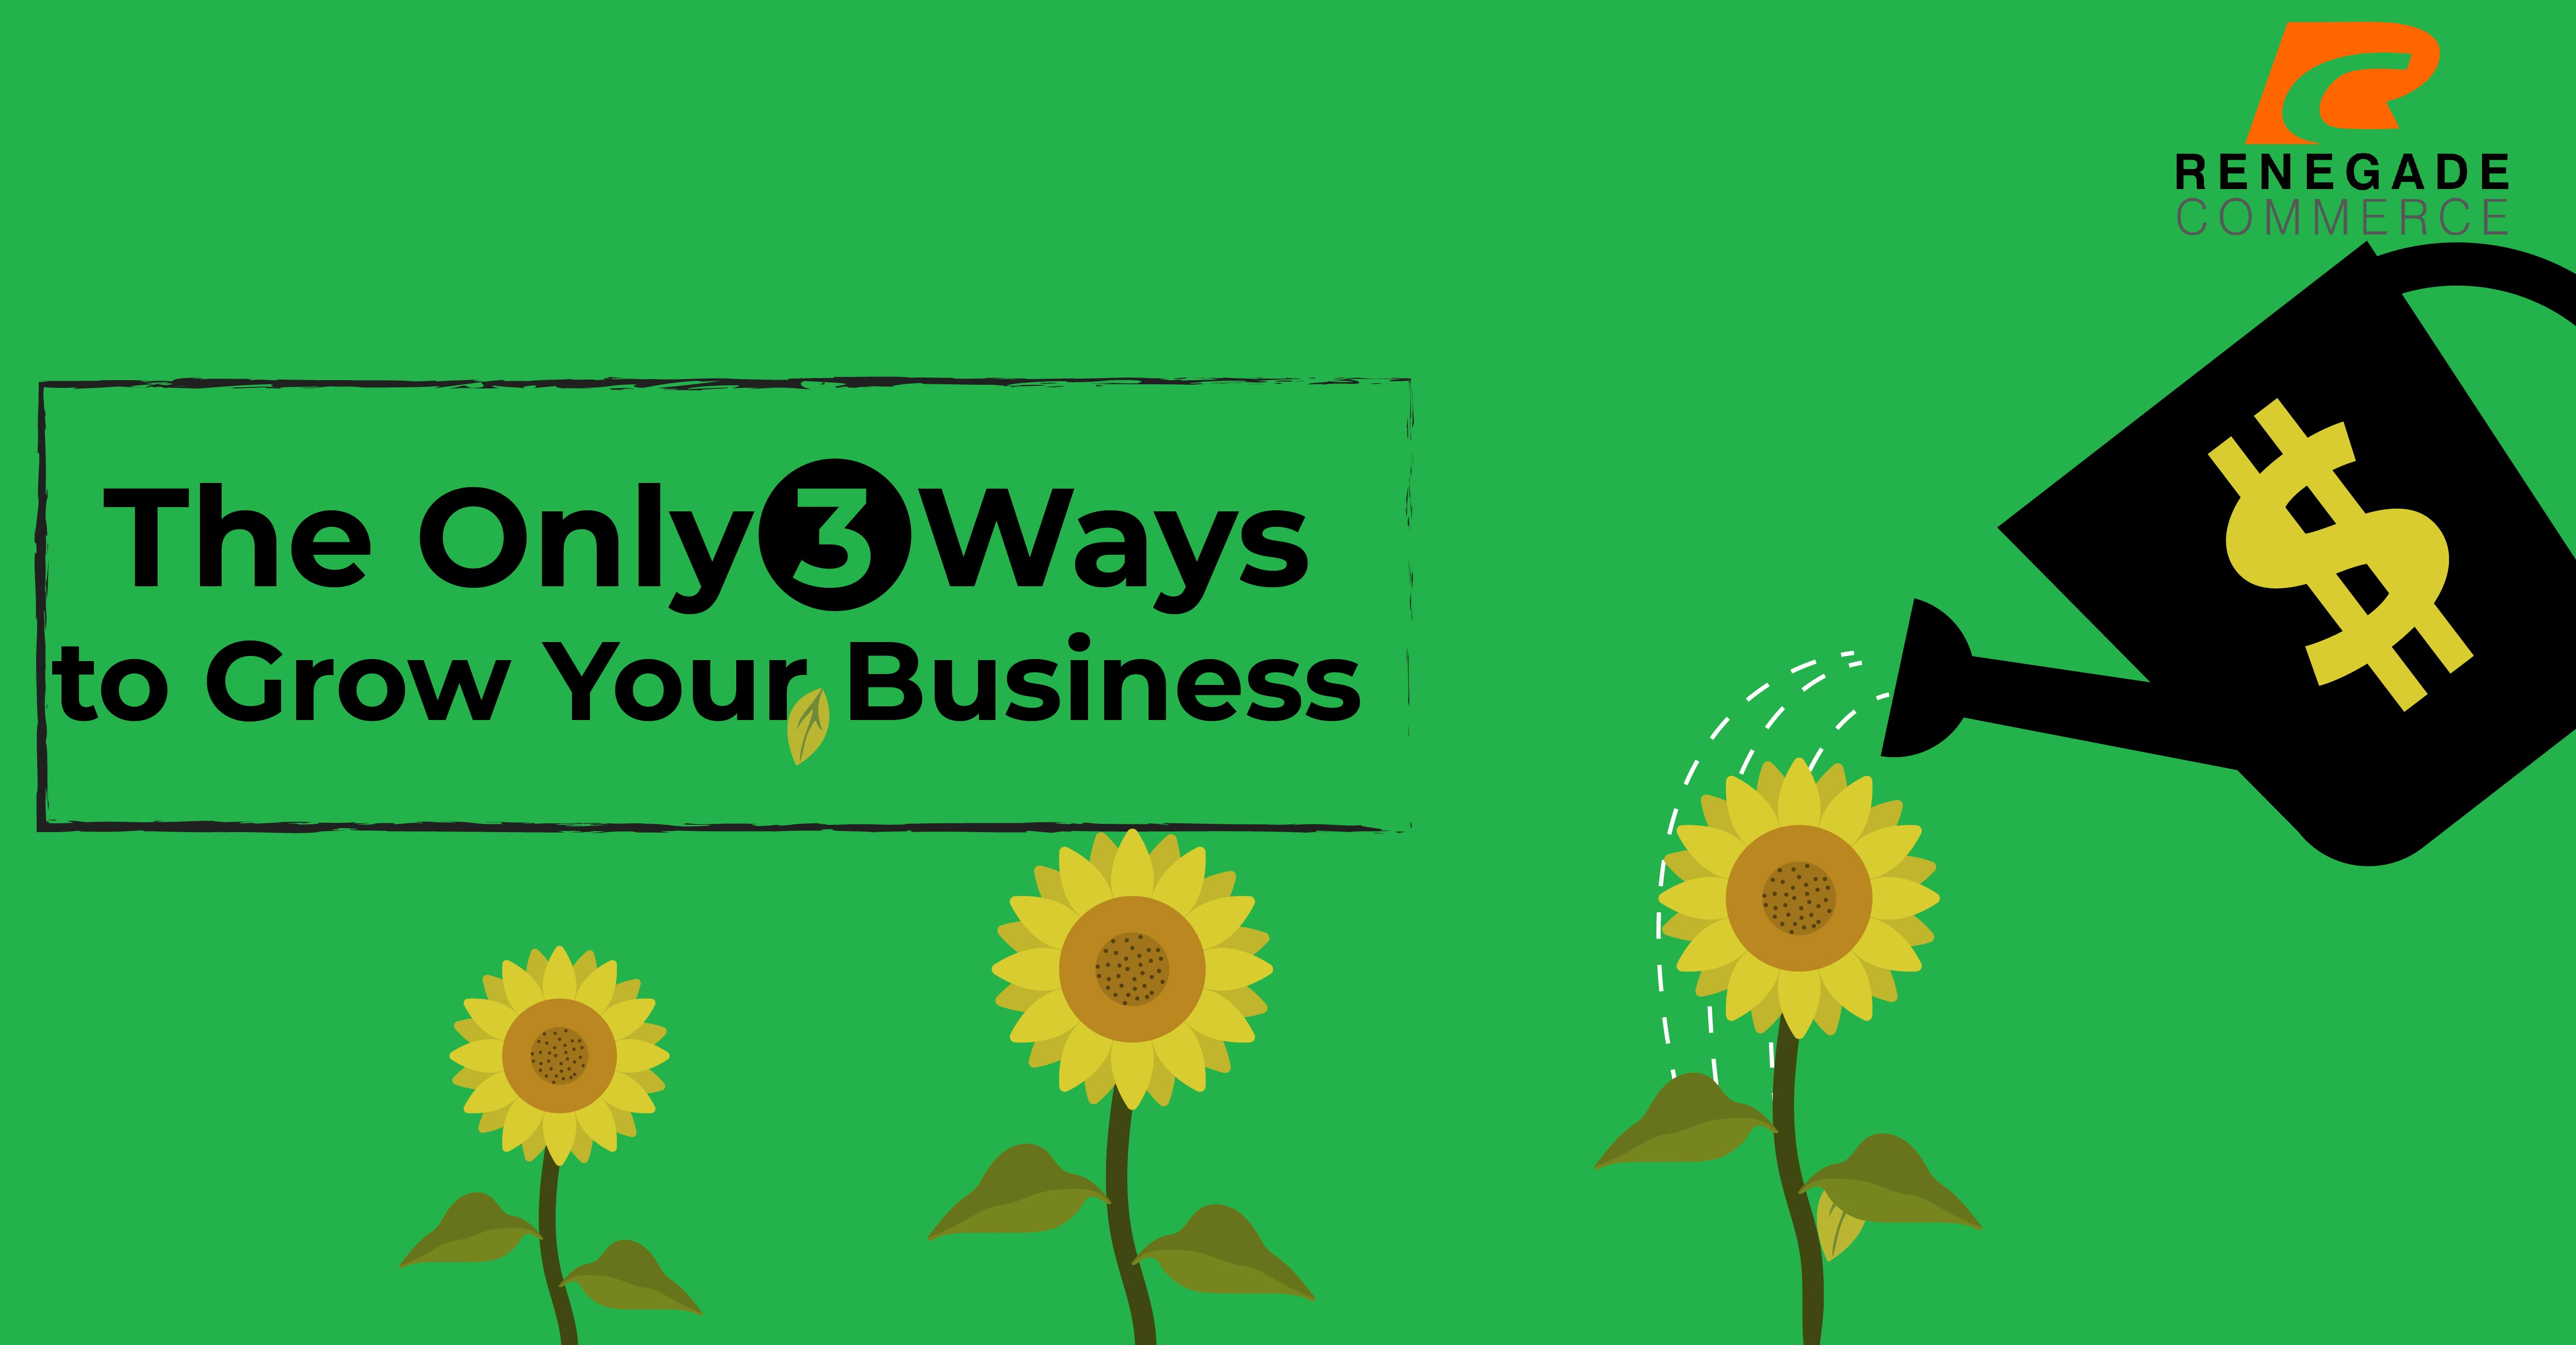 Here are the ONLY 3 Ways to Grow Your Business